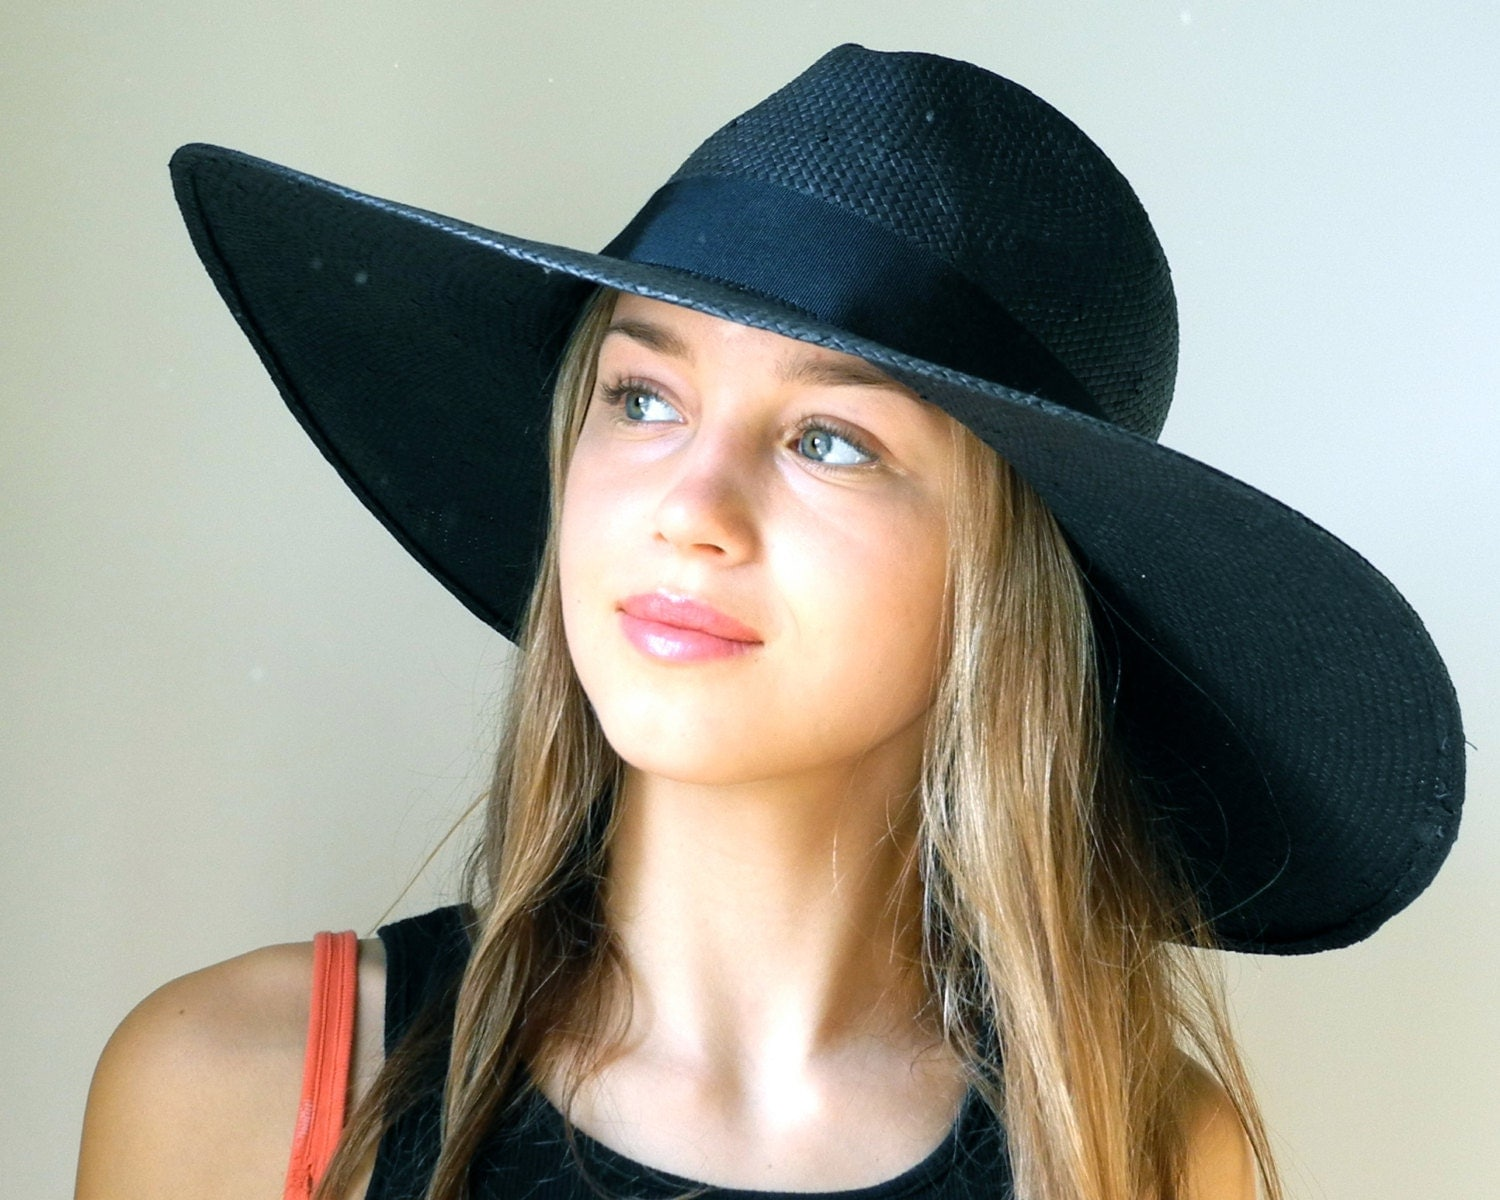 Wide Brimmed Fedora Hat Women Spring Fashion by KatarinaHats